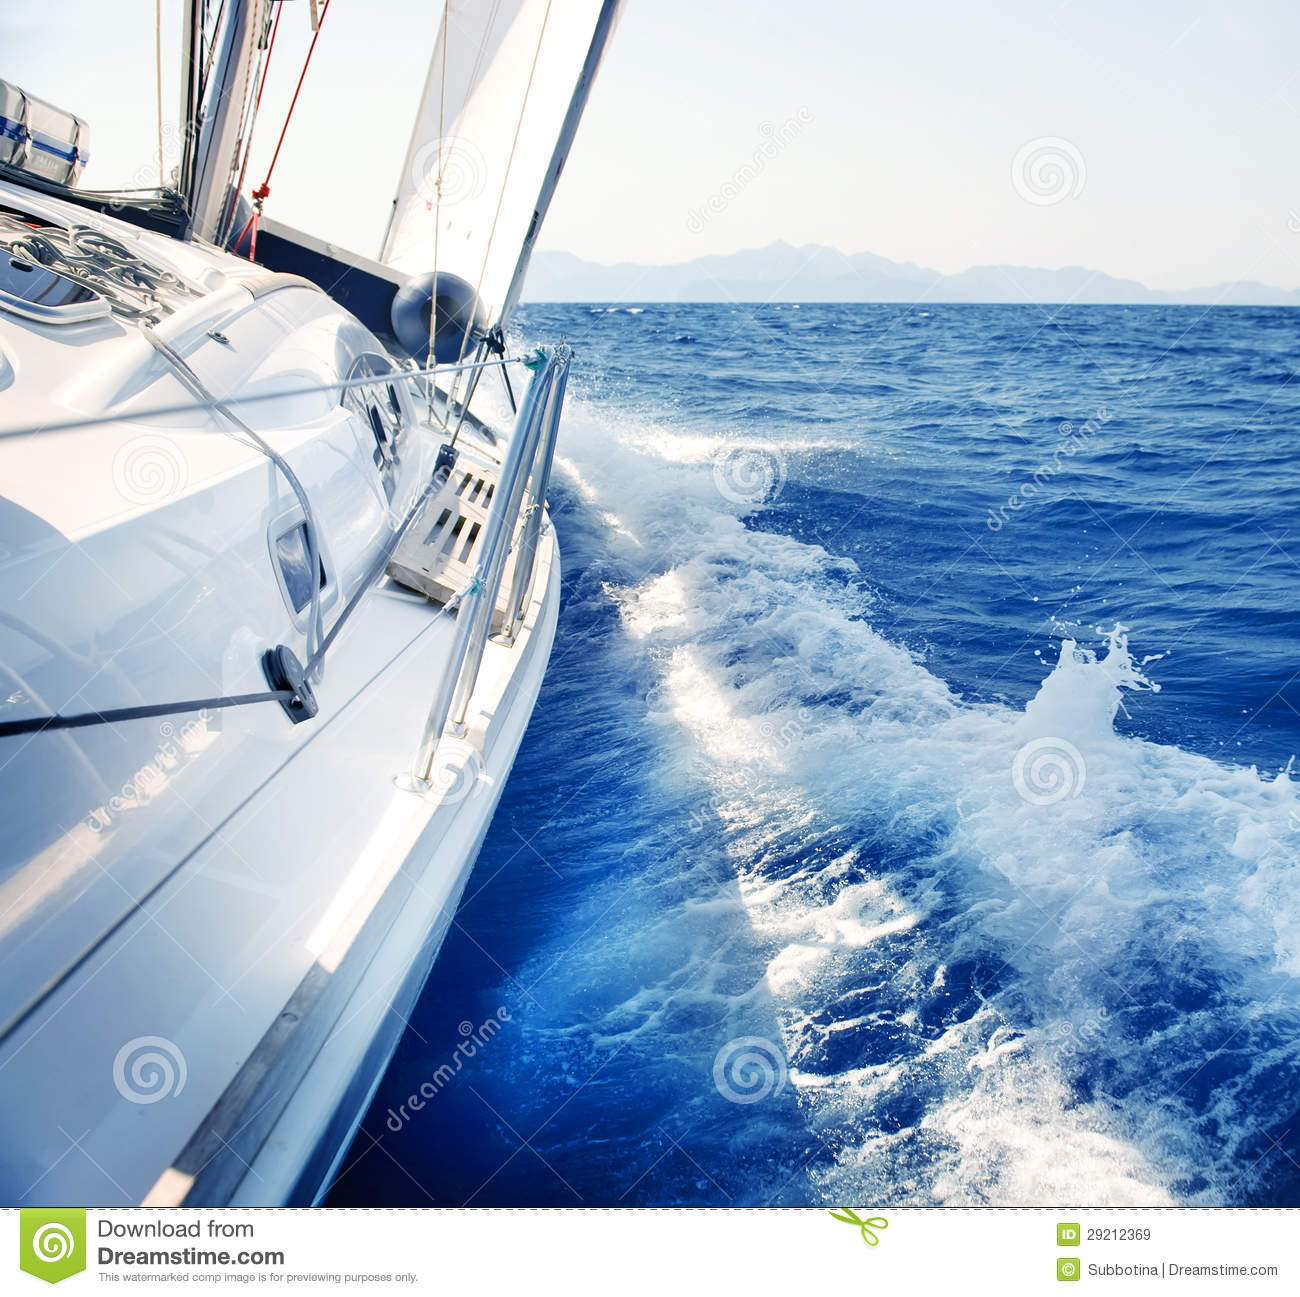 ... Yachting. Luxury Lifestyle Royalty Free Stock Images - Image: 29212369